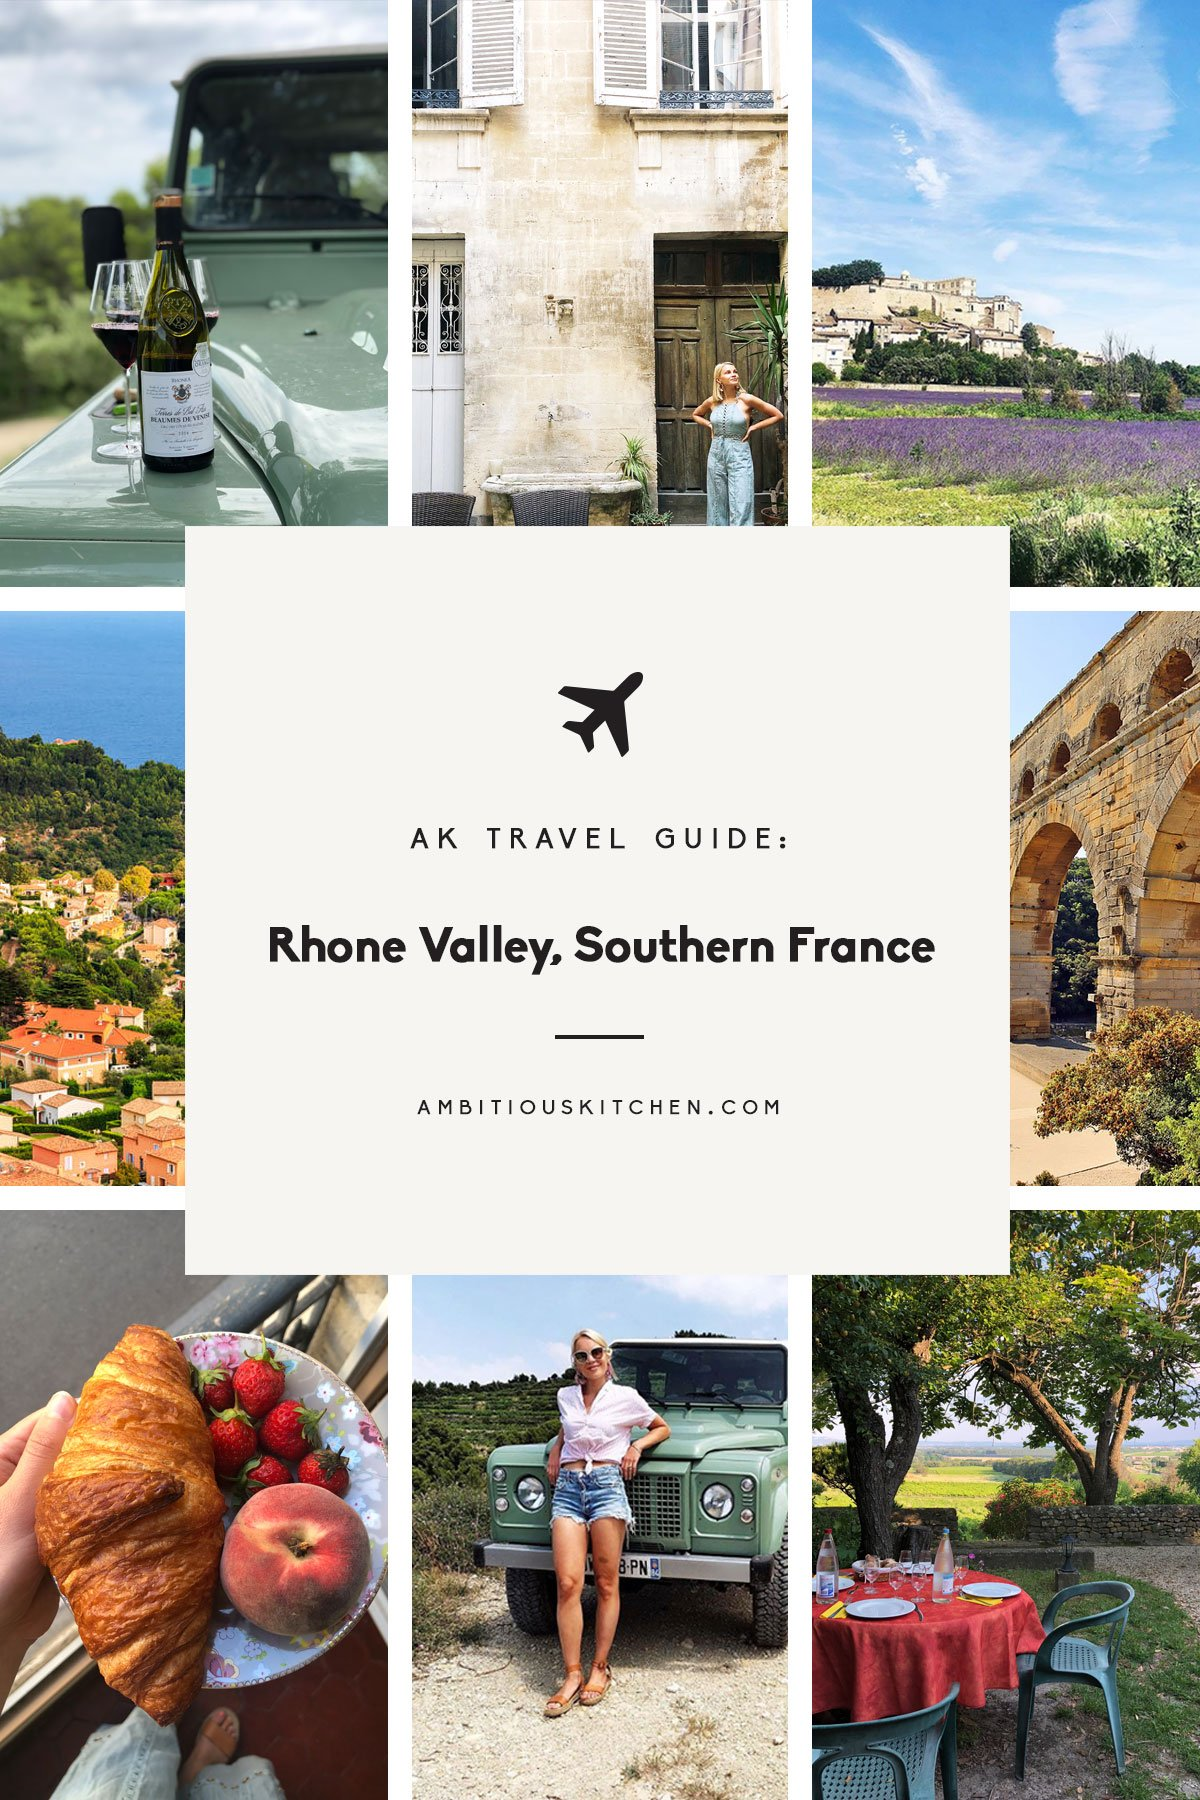 AK travel guide: rhone valley, southern france